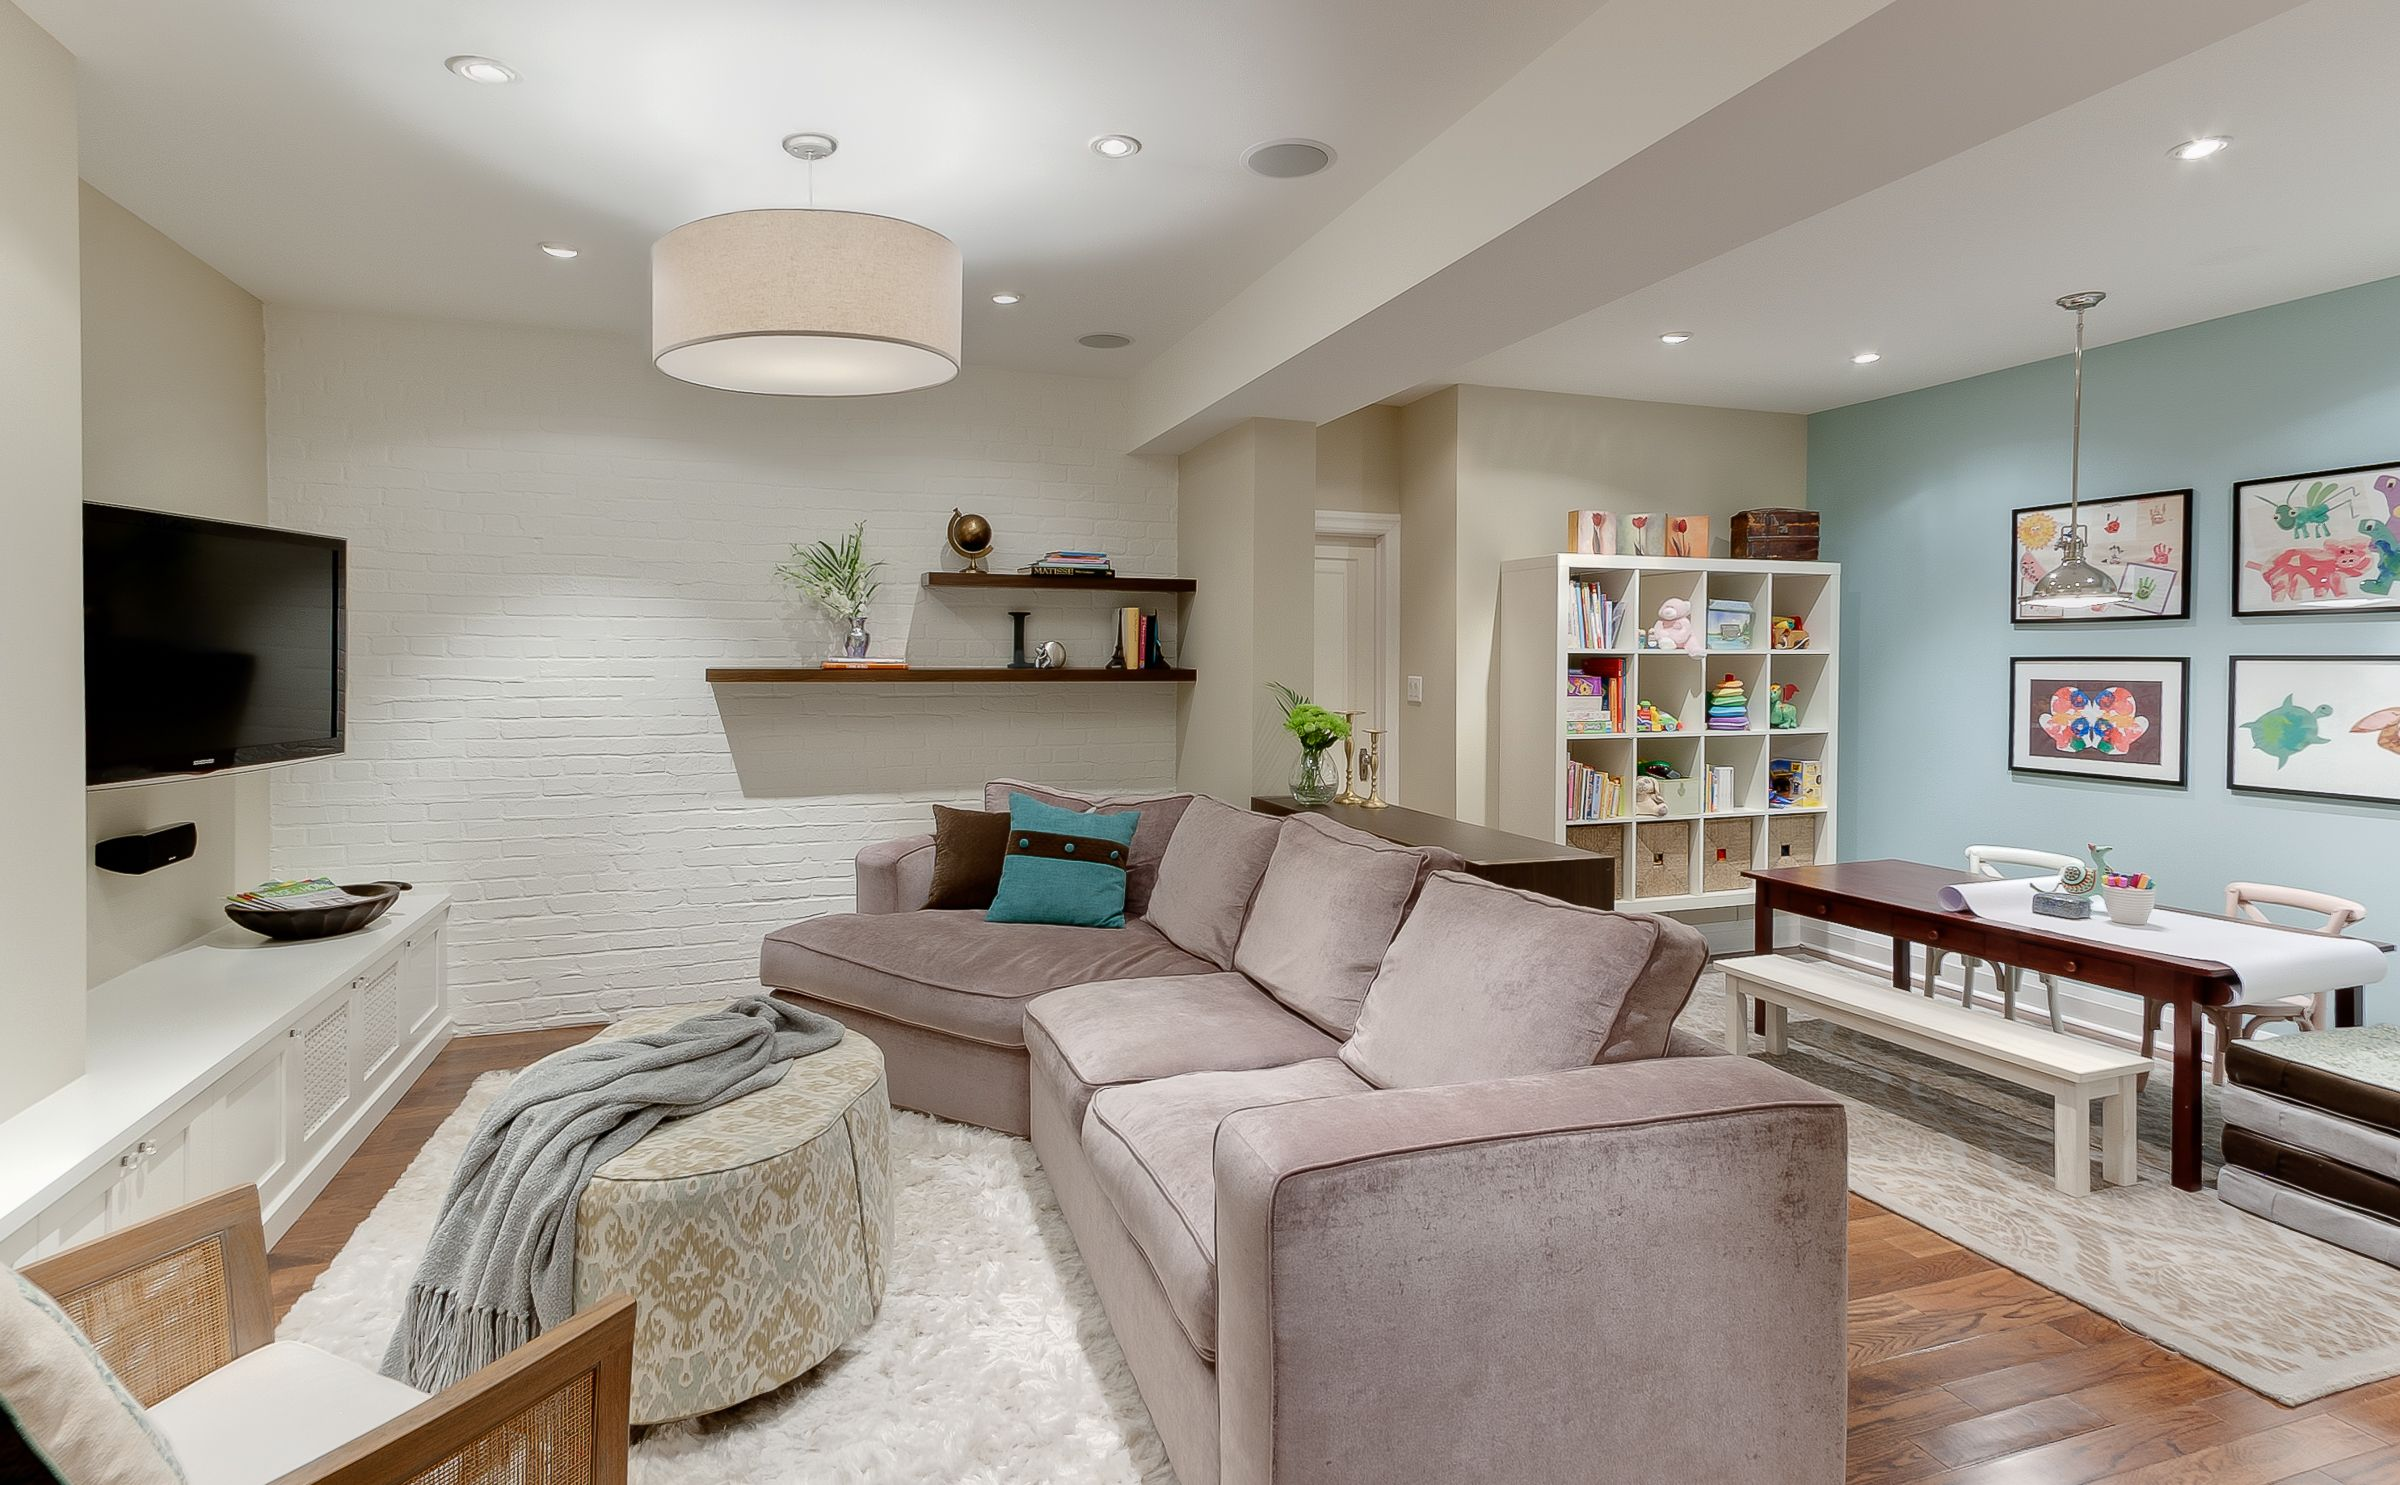 Basement Wall Sconces Part - 22: Use A Mix Of Pot Lights, Wall Sconces And Lamps To Brighten A Basement.